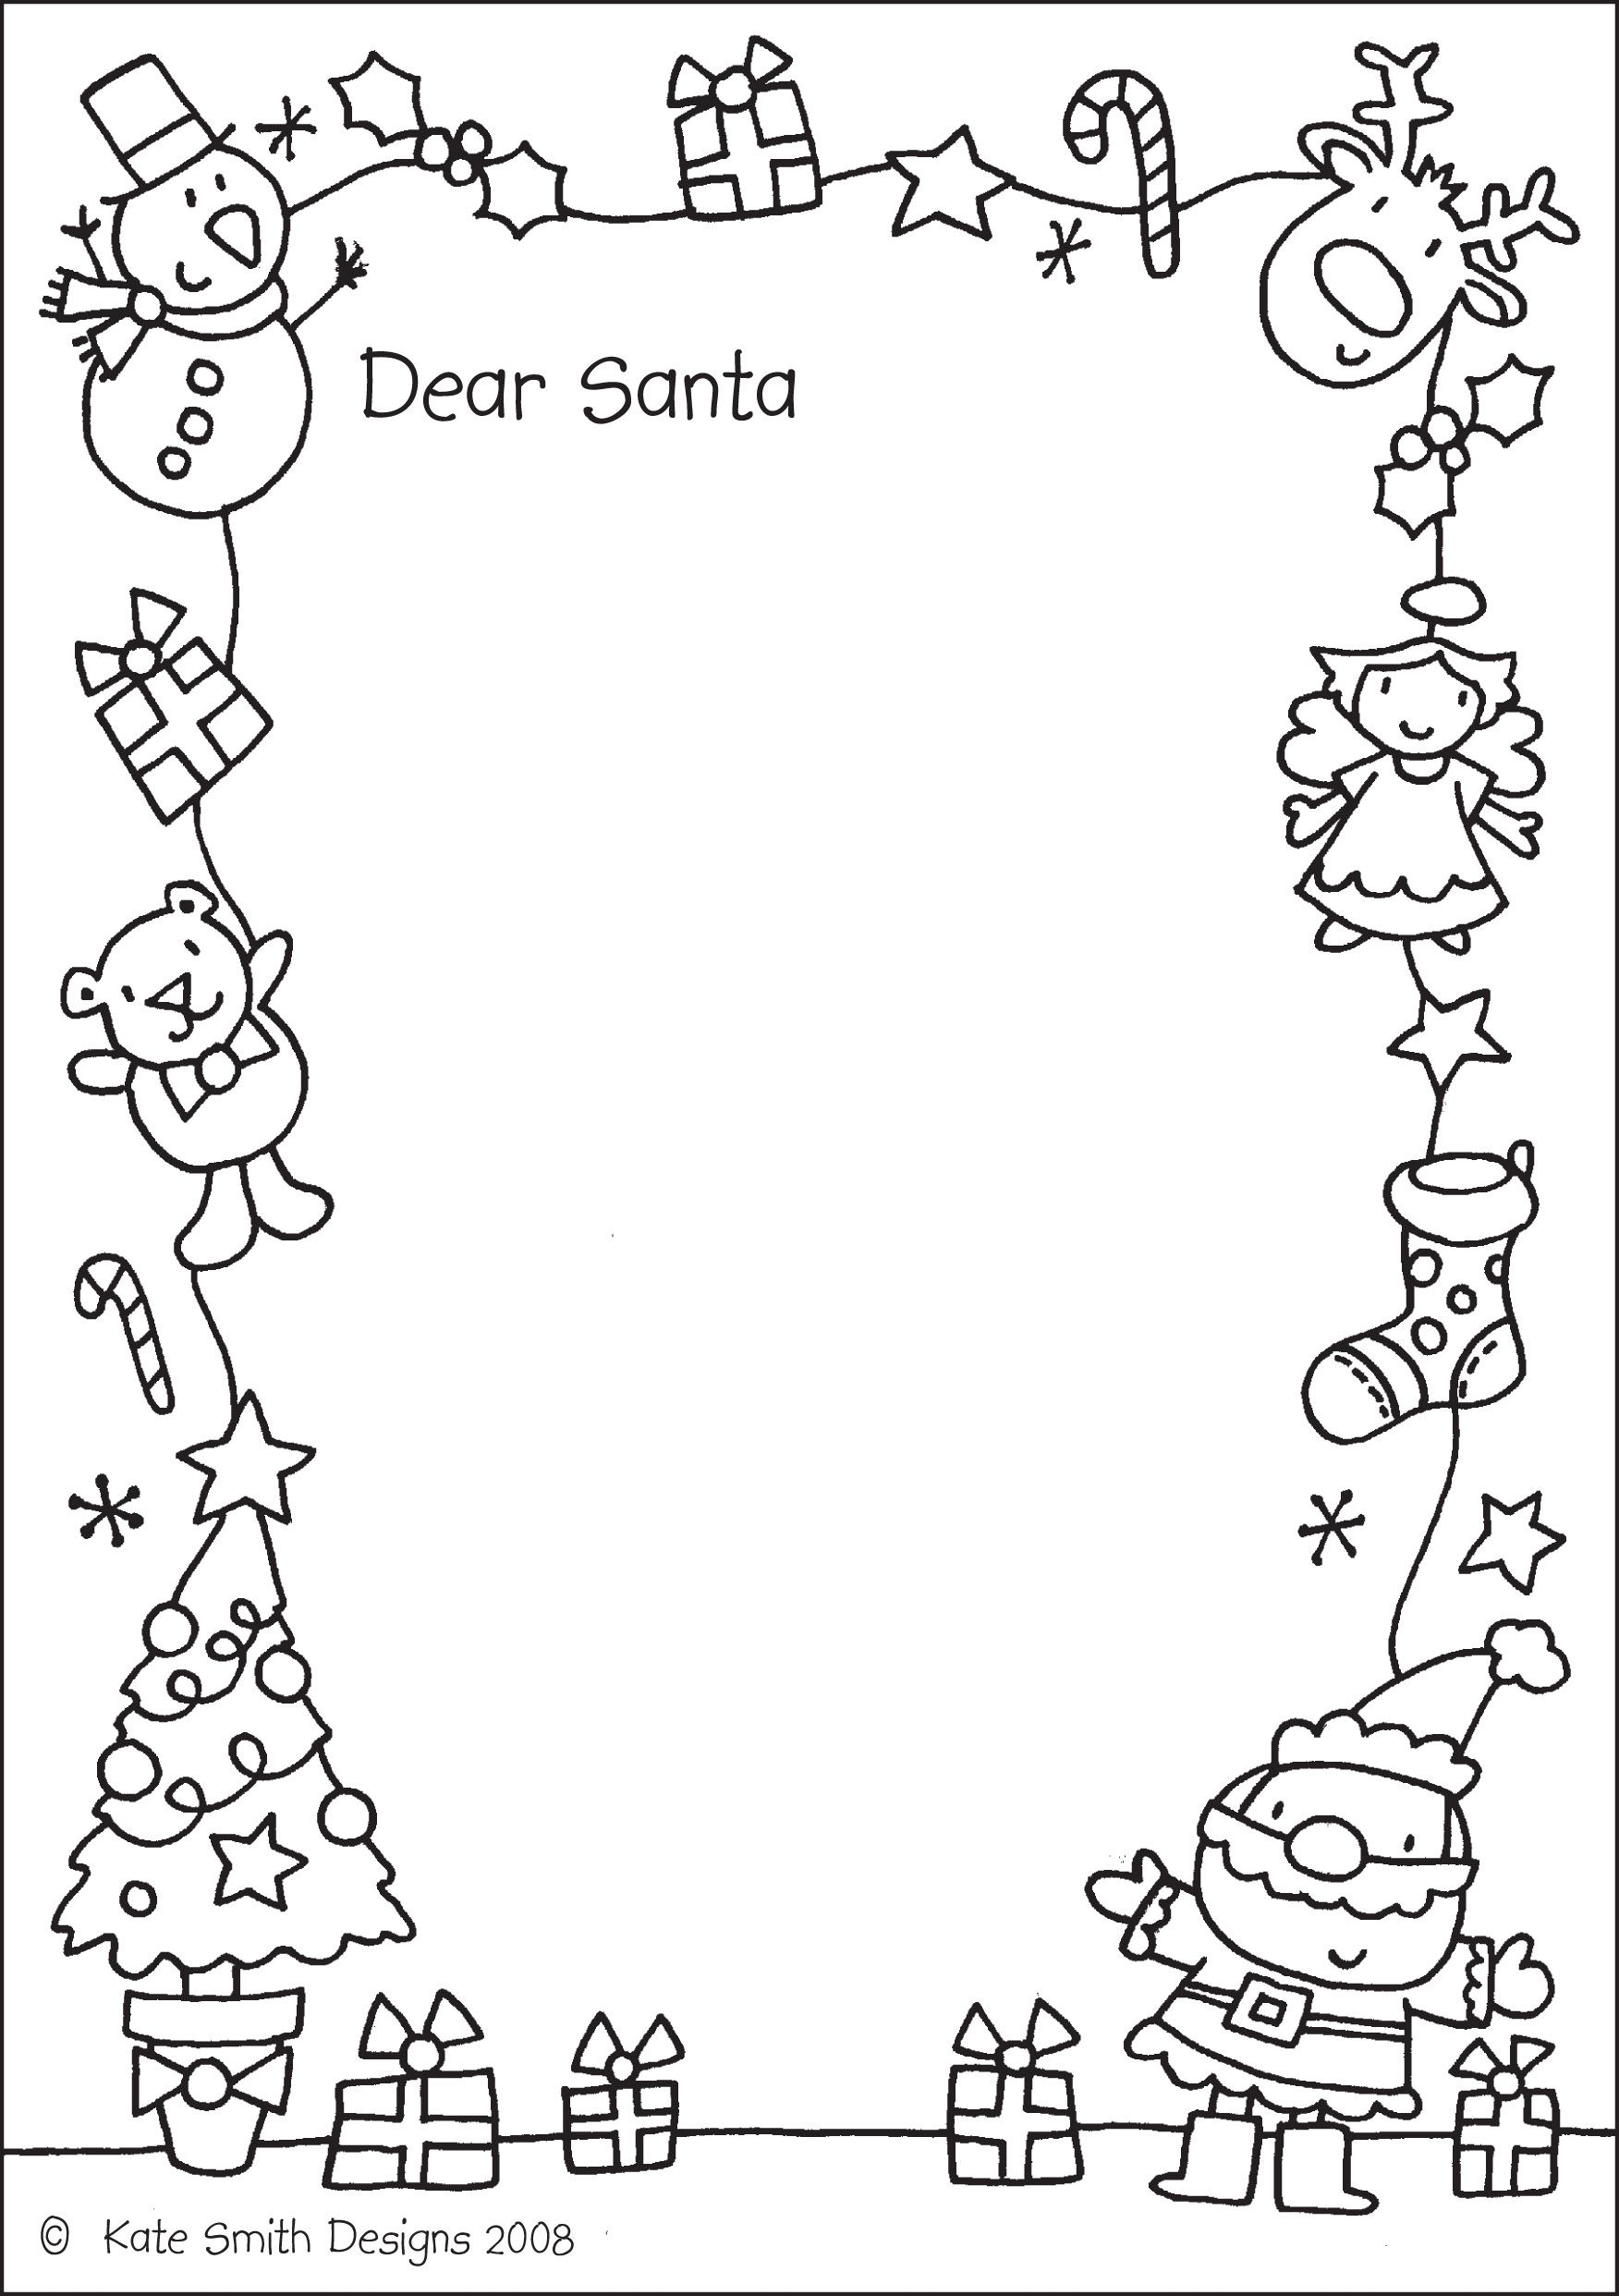 17 best ideas about your letter to santa on pinterest christmas traditions kids christmas traditions and kids christmas crafts